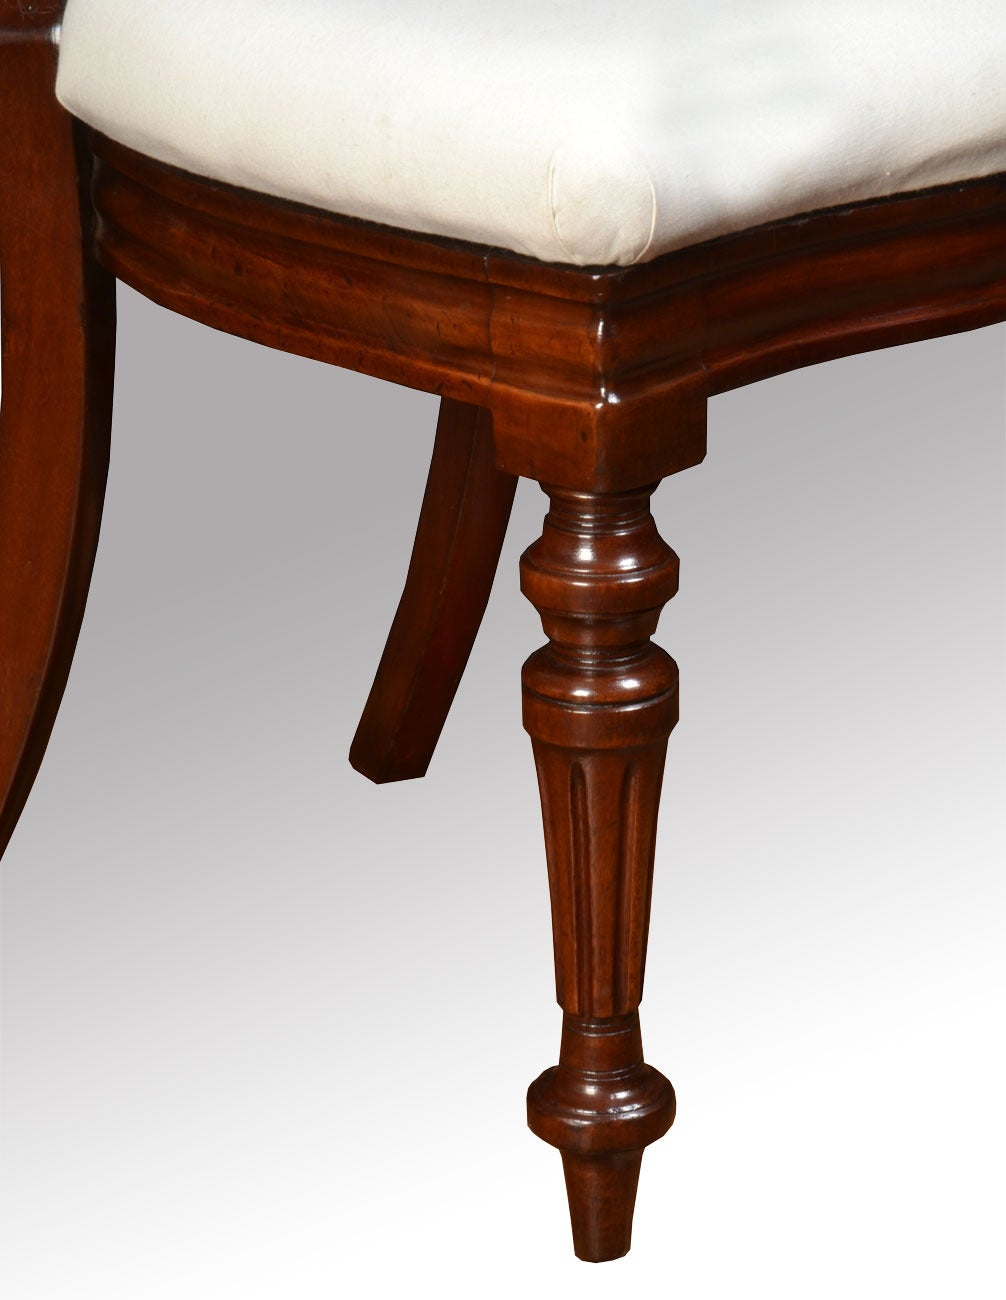 Set of 12 Mahogany Victorian Dining Chairs For Sale at 1stdibs : DSC0675 1 from www.1stdibs.com size 1006 x 1300 jpeg 82kB